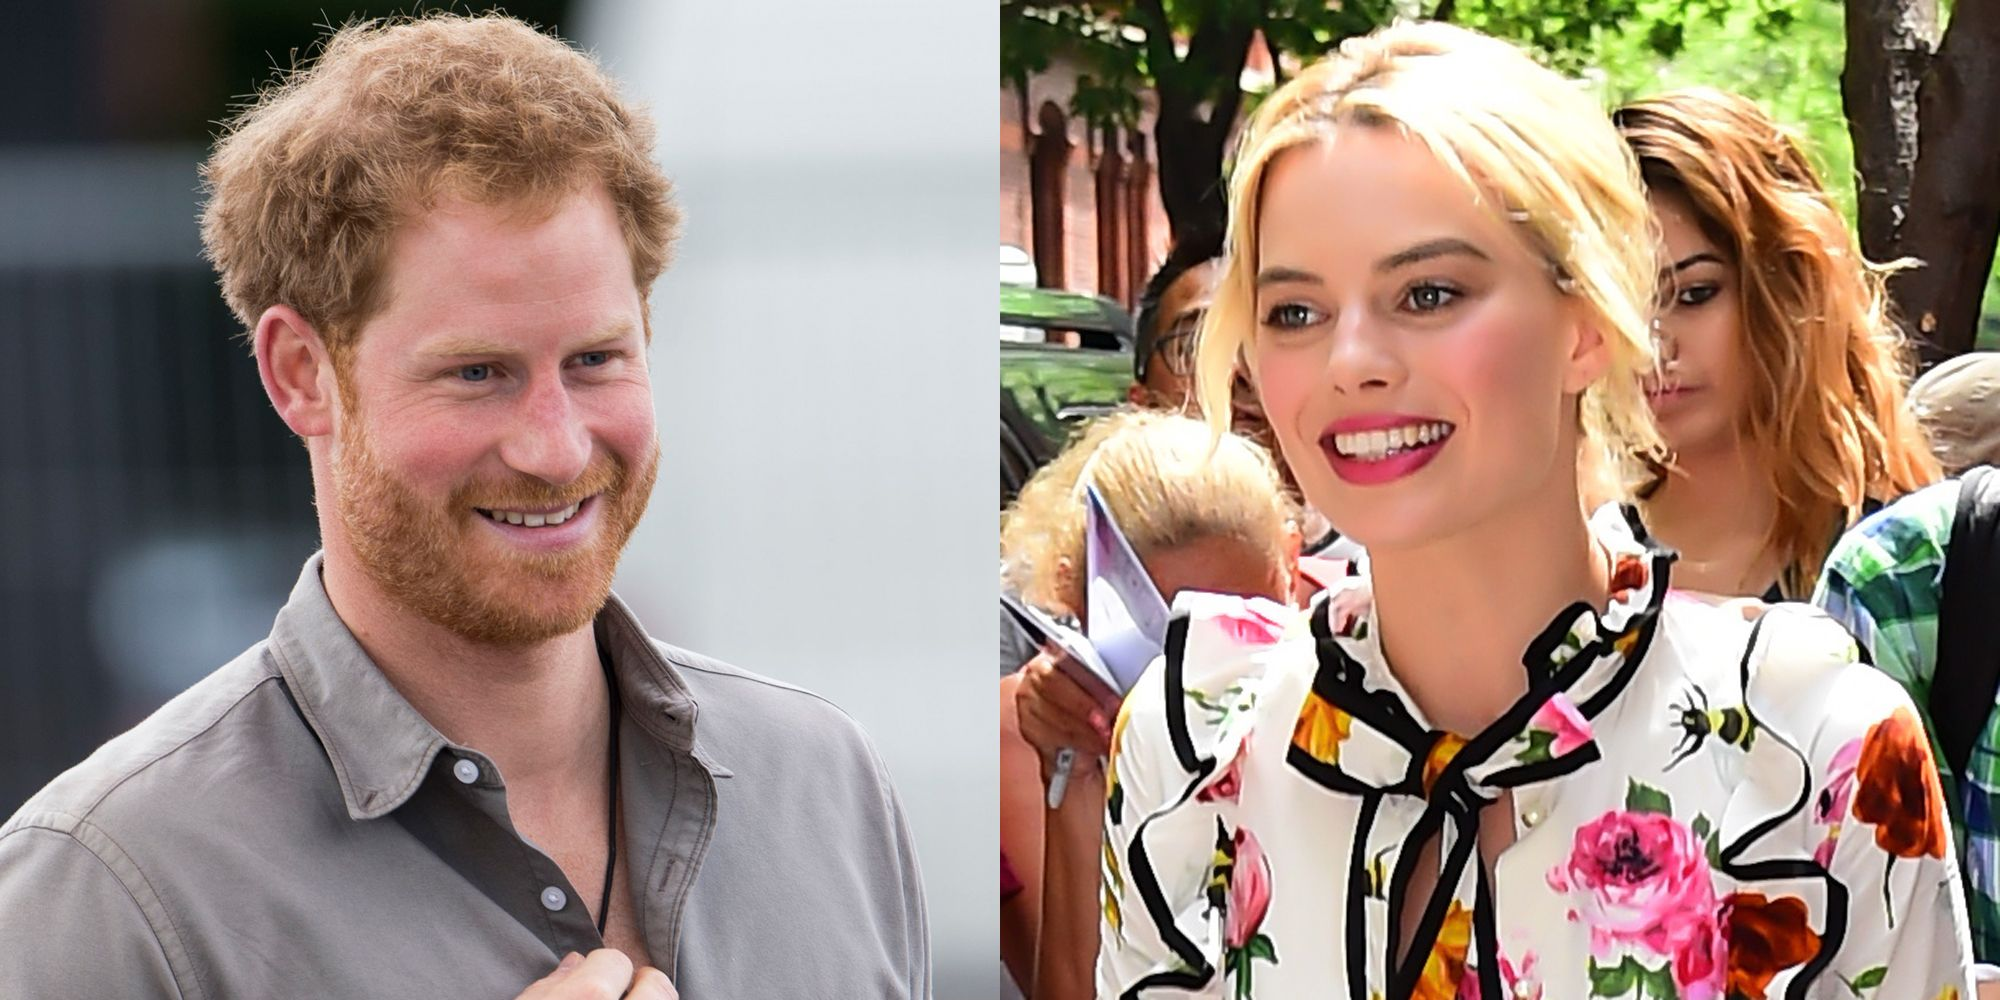 Prince Harry and Margot Robbie are Secretly meeting in Los Angeles